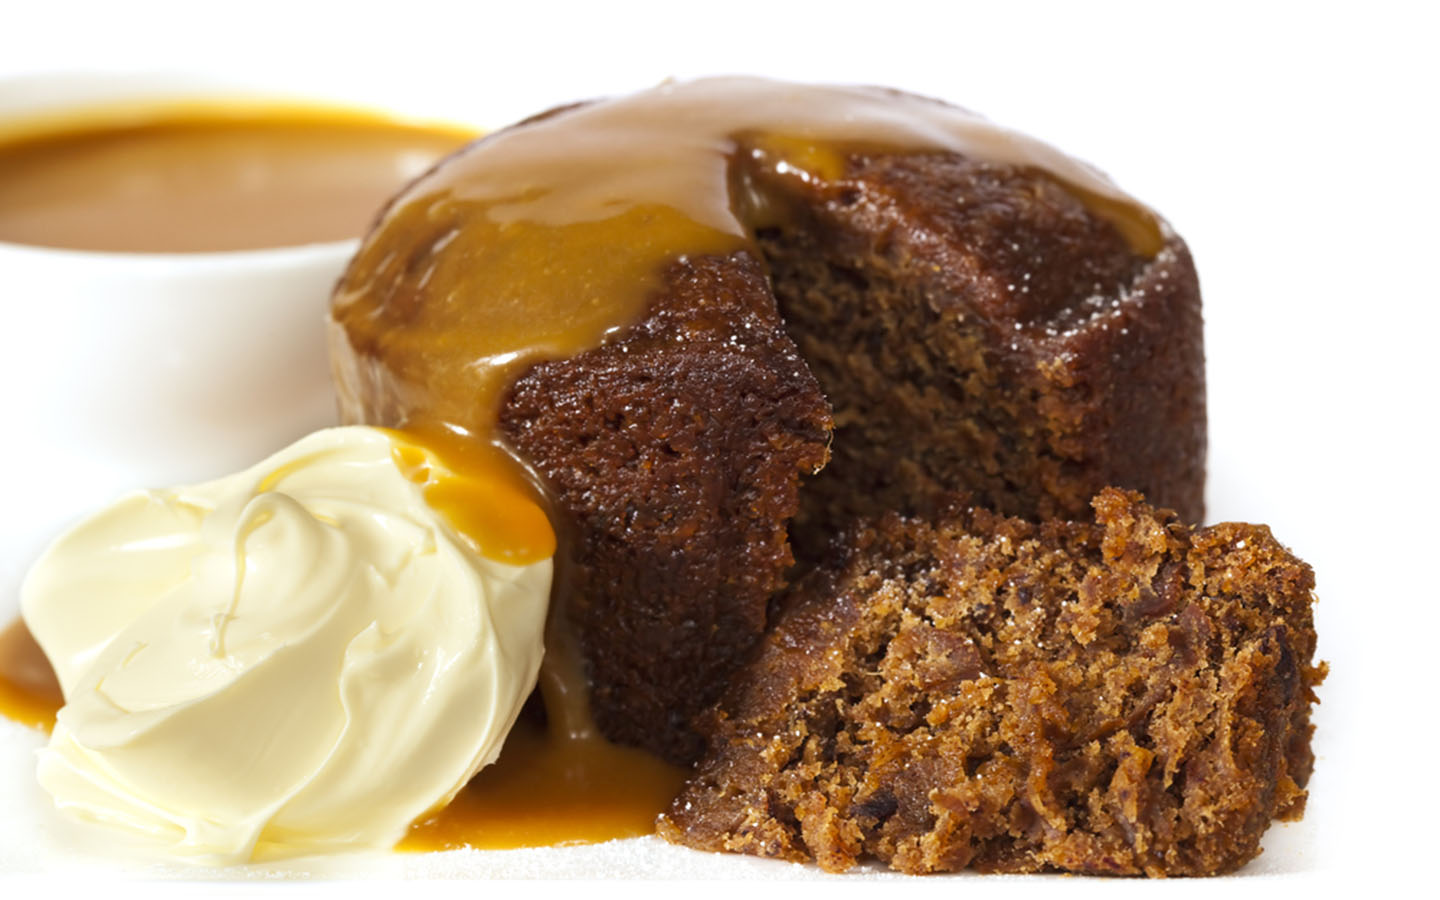 Date pudding- desserts in Abu Dhabi